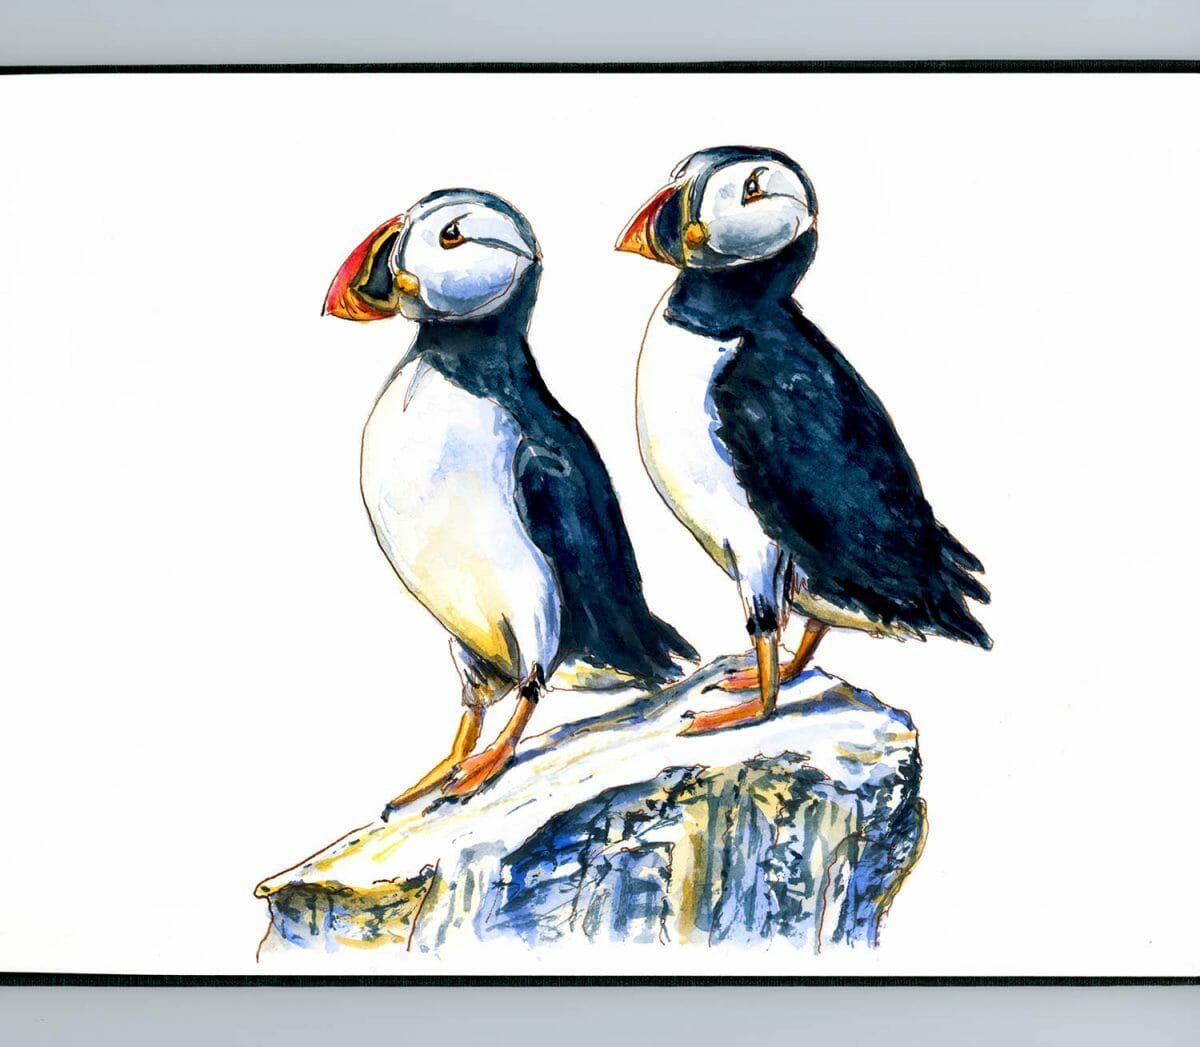 #WorldWatercolorGroup - Day 6 - Puffins On A Rock - Doodlewash